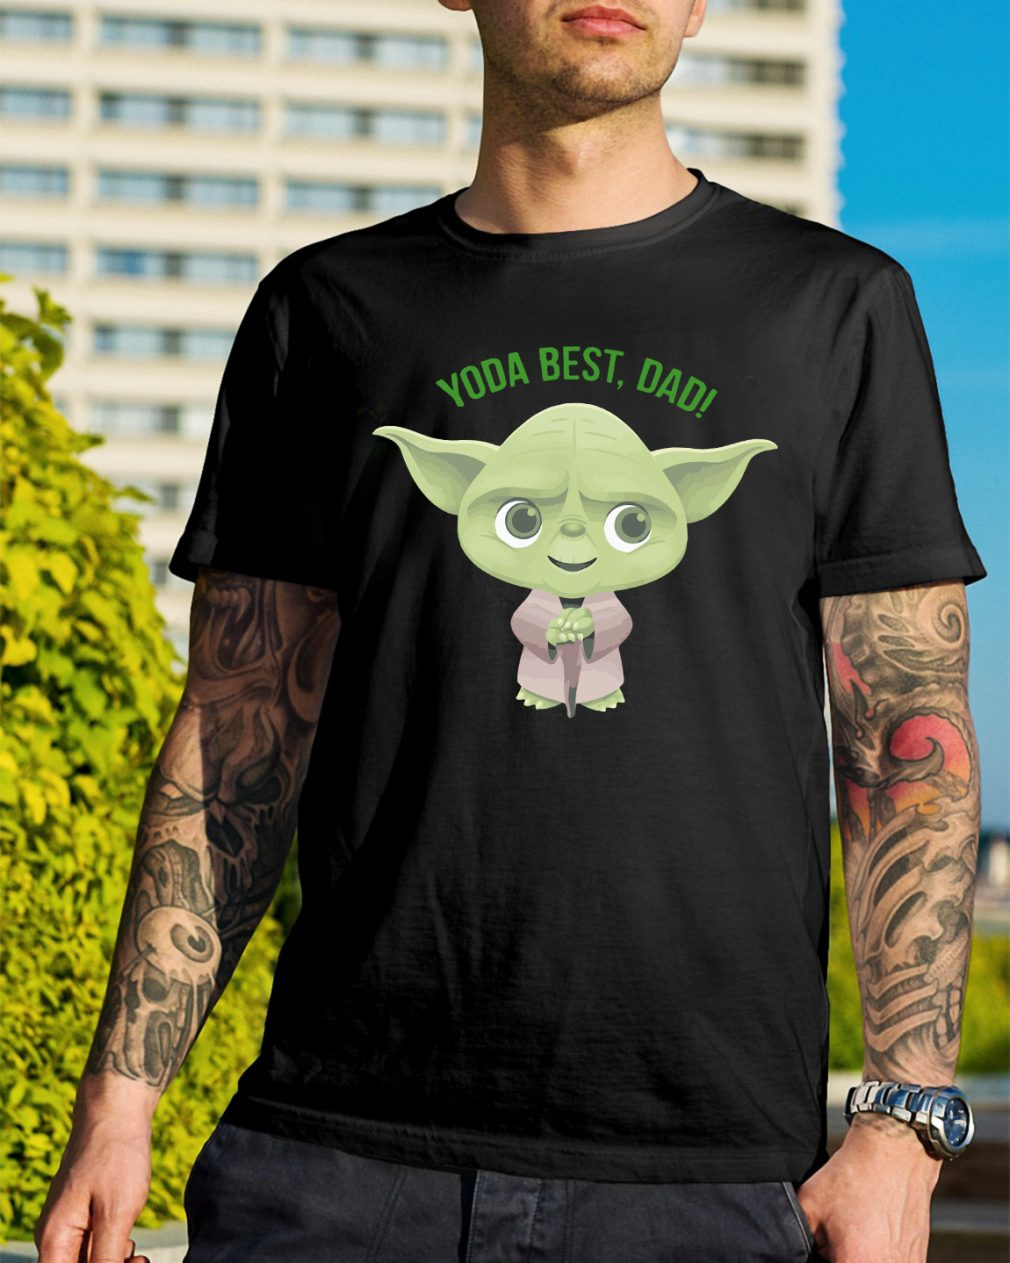 Official Star Wars Yoda best dad shirt